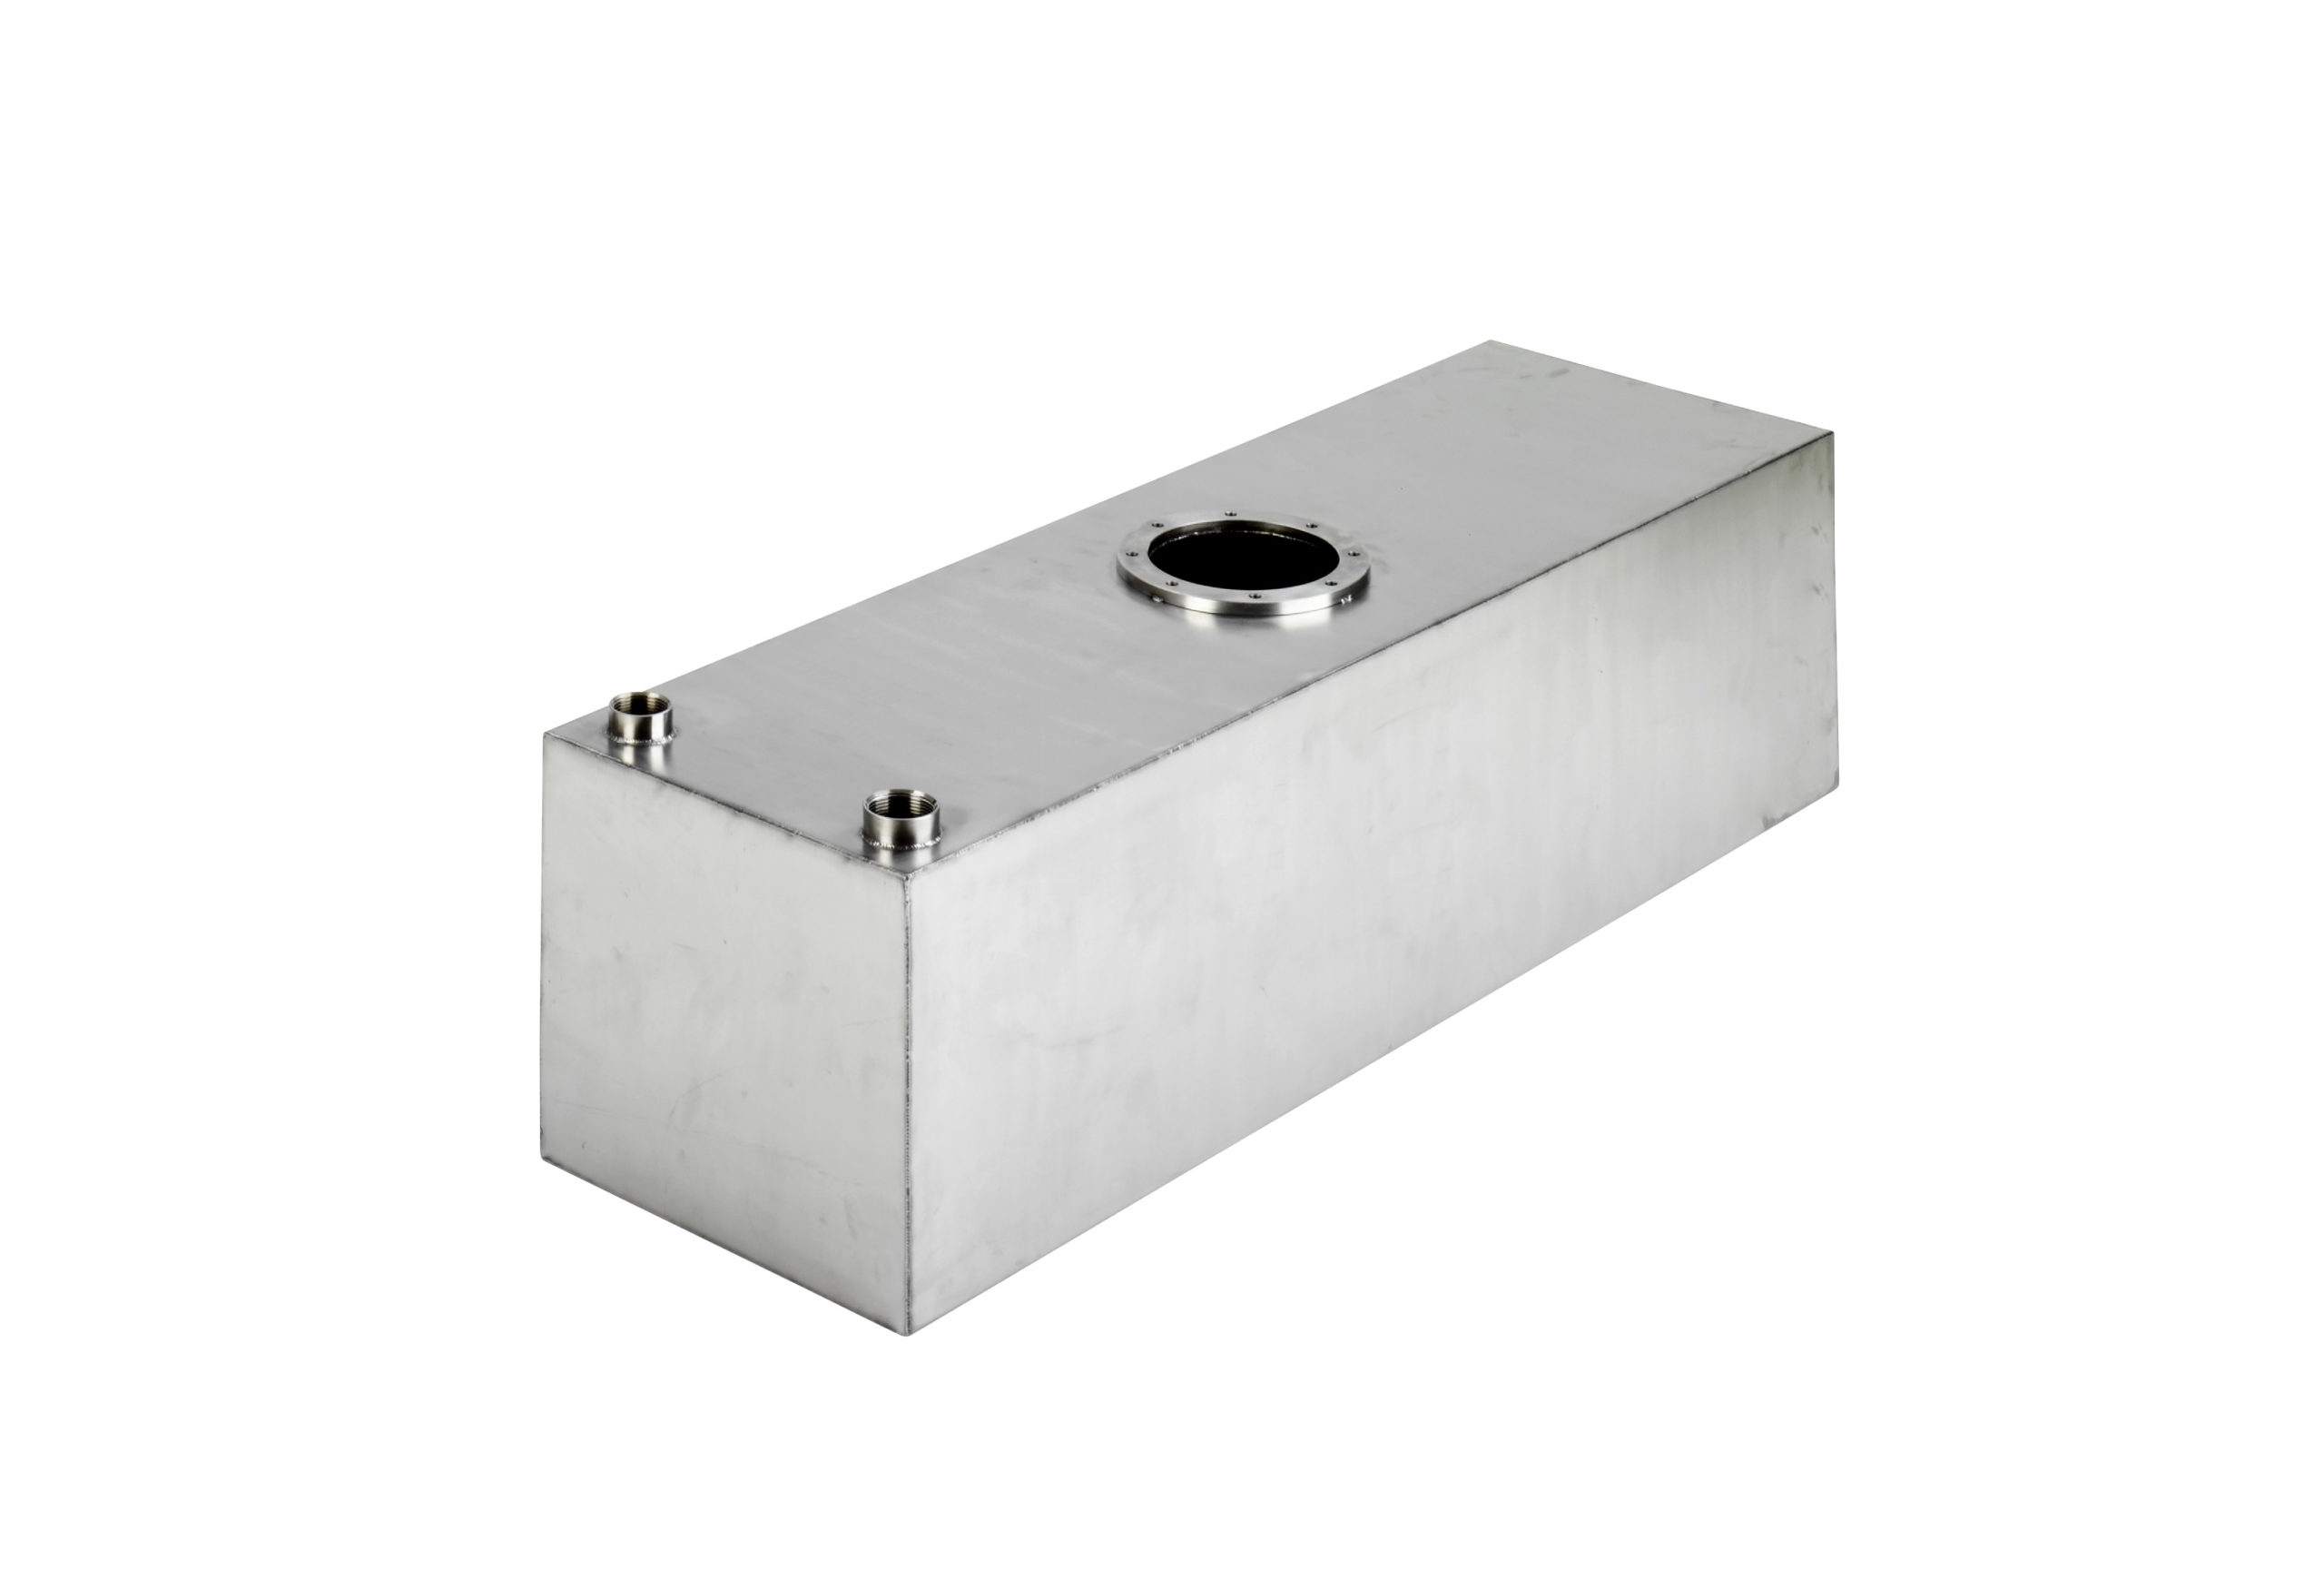 120 Litre Fuel Tank - Stainless Steel or Aluminium